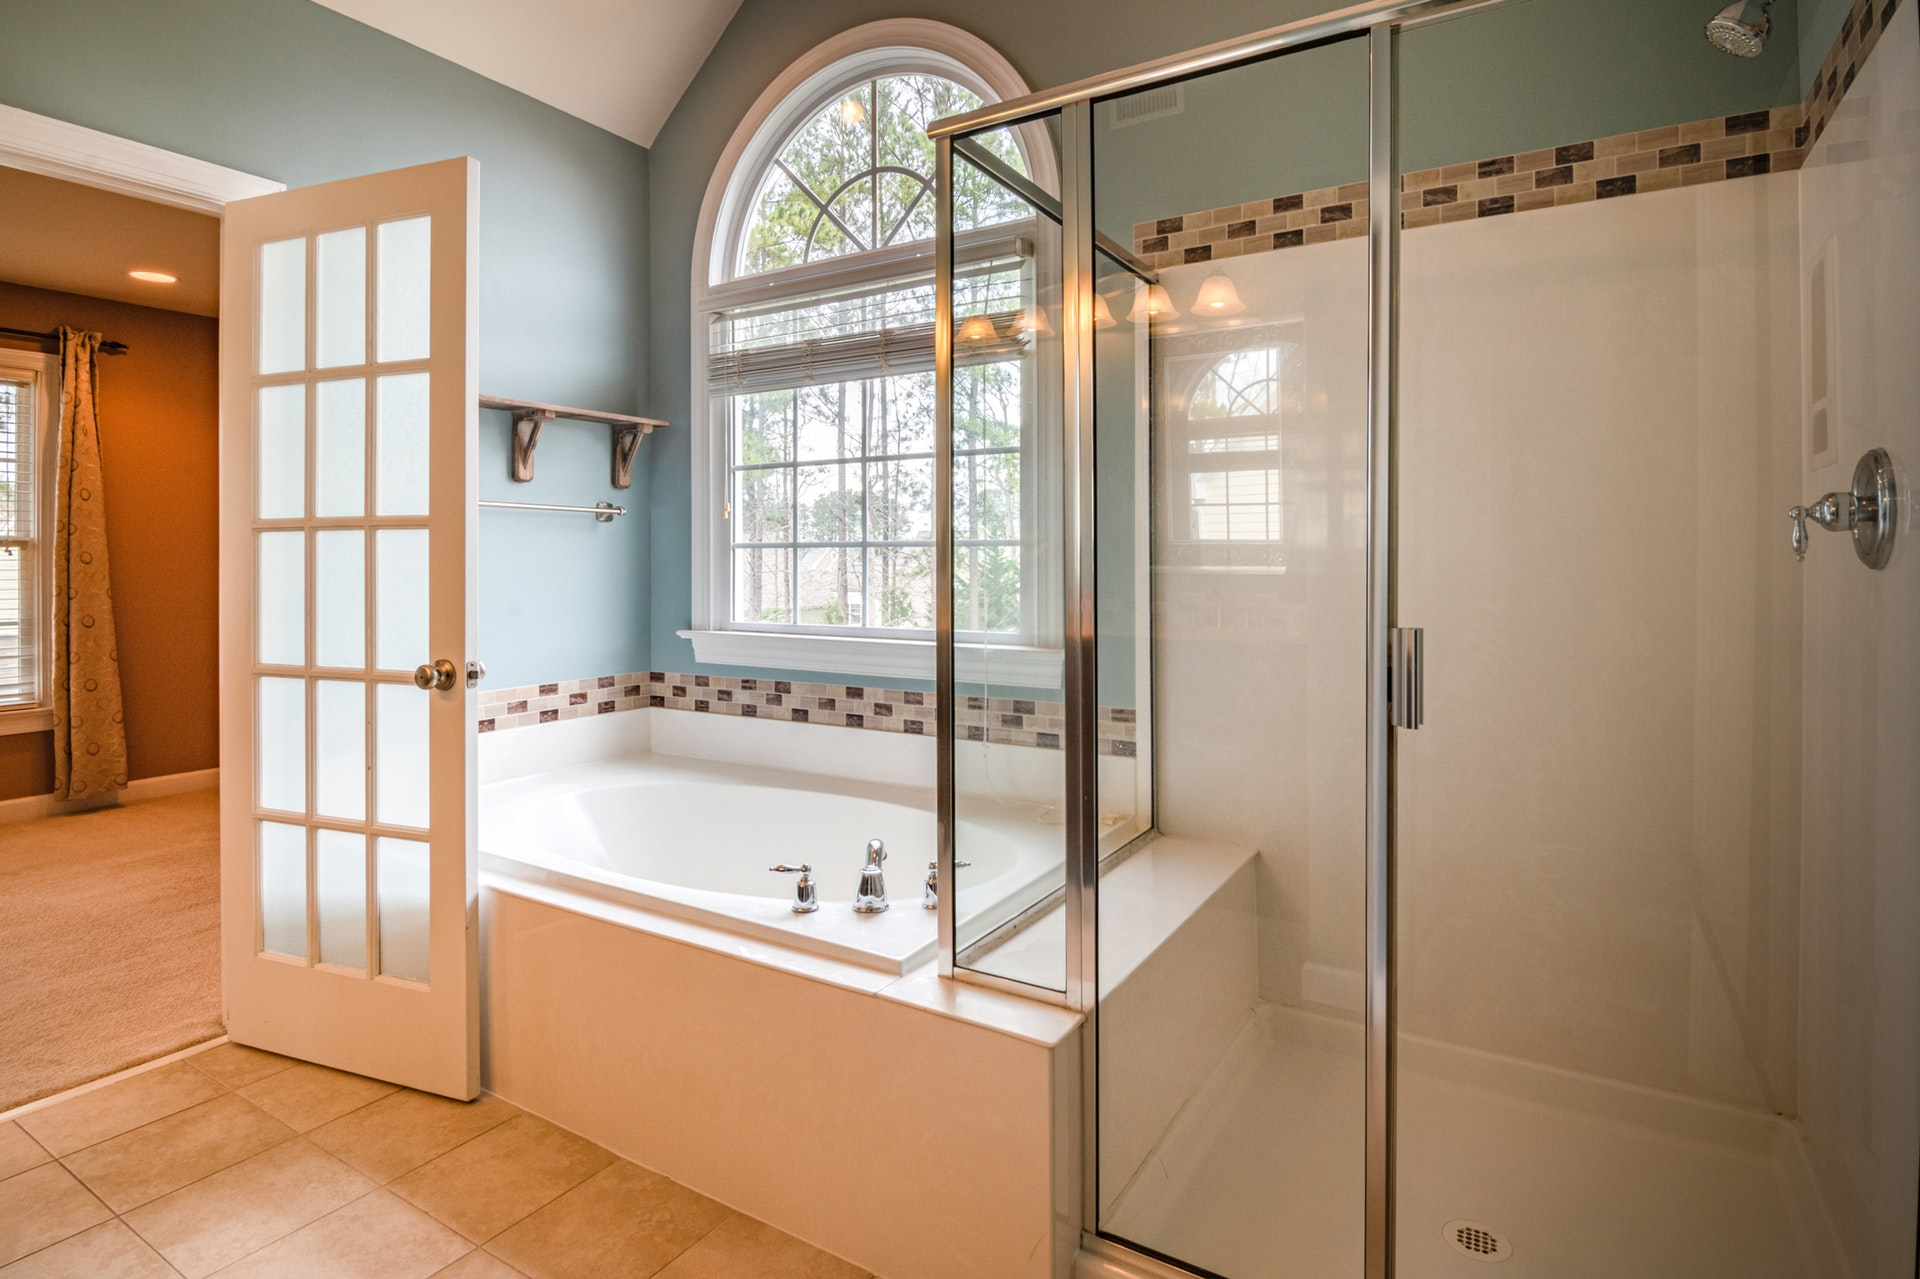 How Do I Save Money on Bathroom Shower Doors?